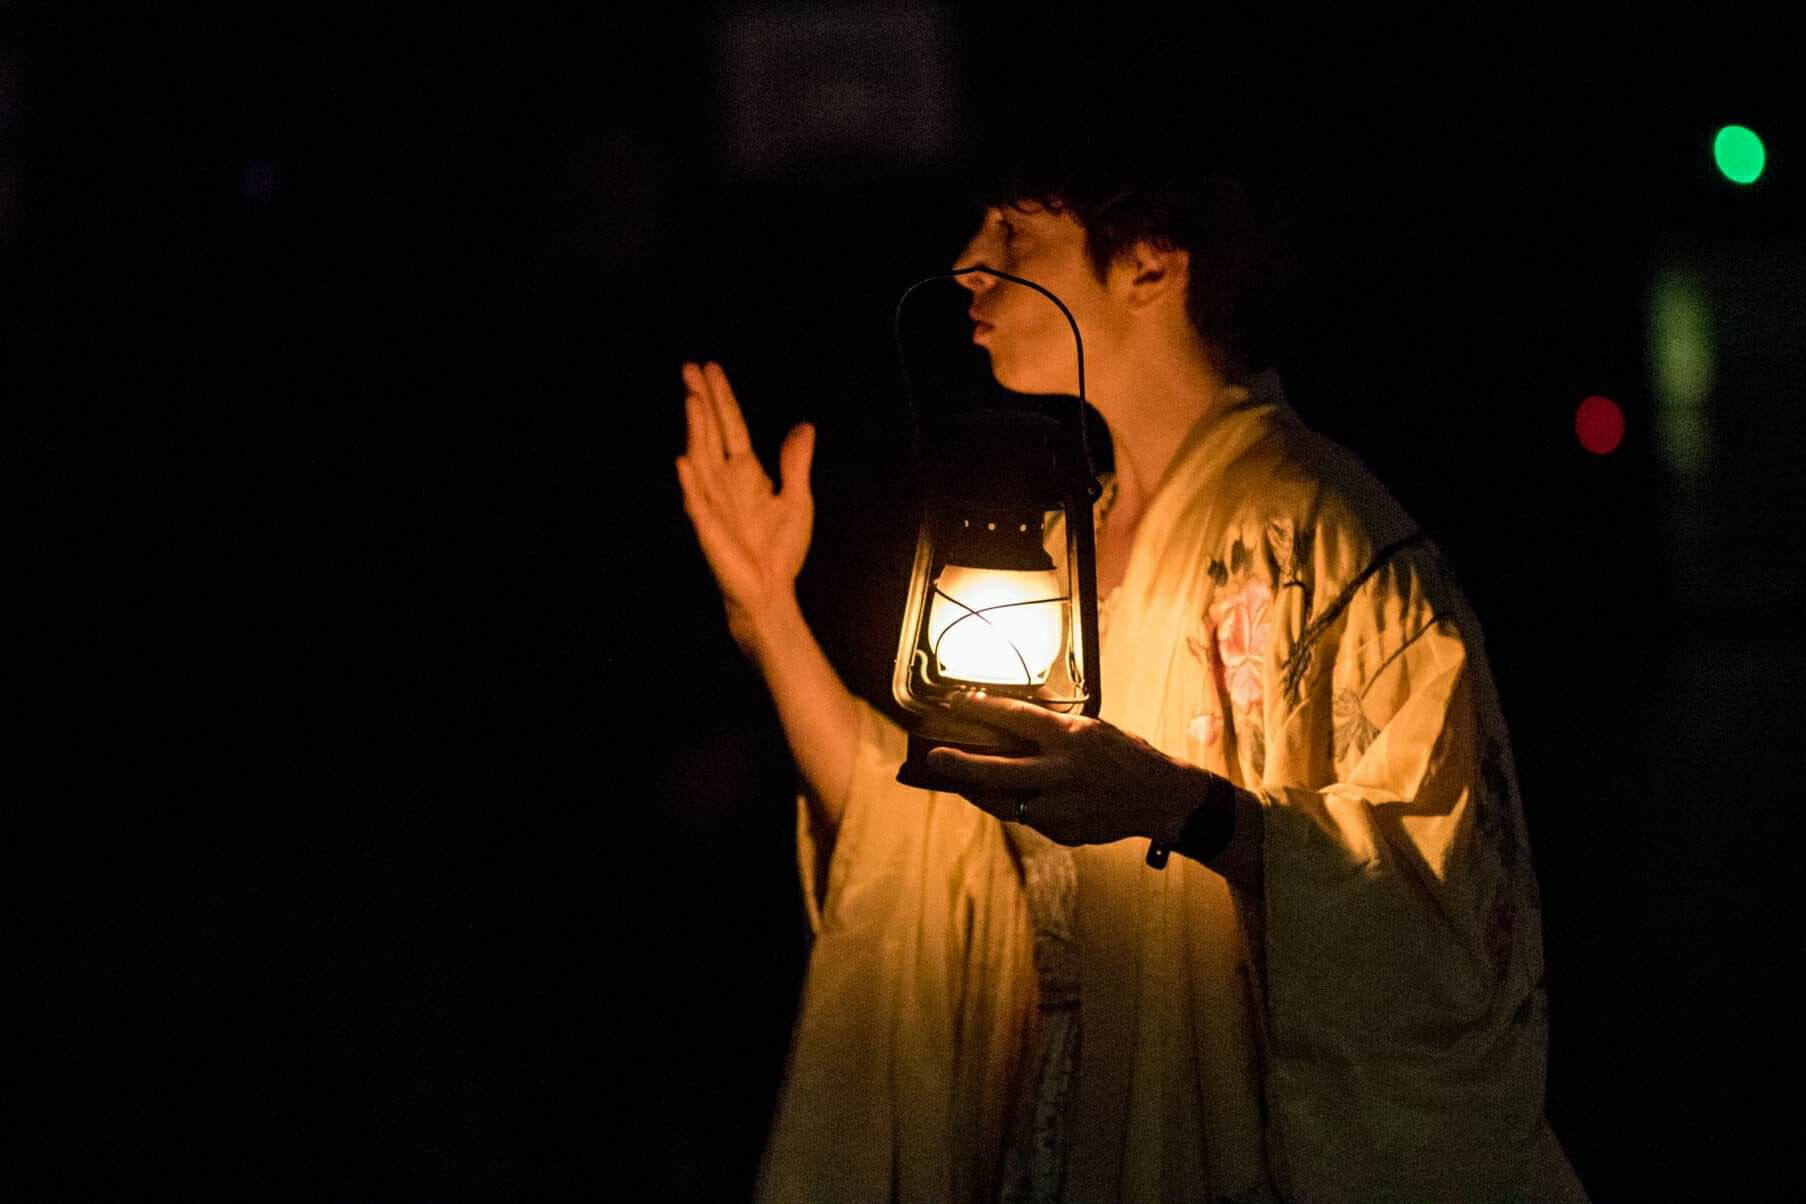 London Dreamtime storytelling quirky valentine's